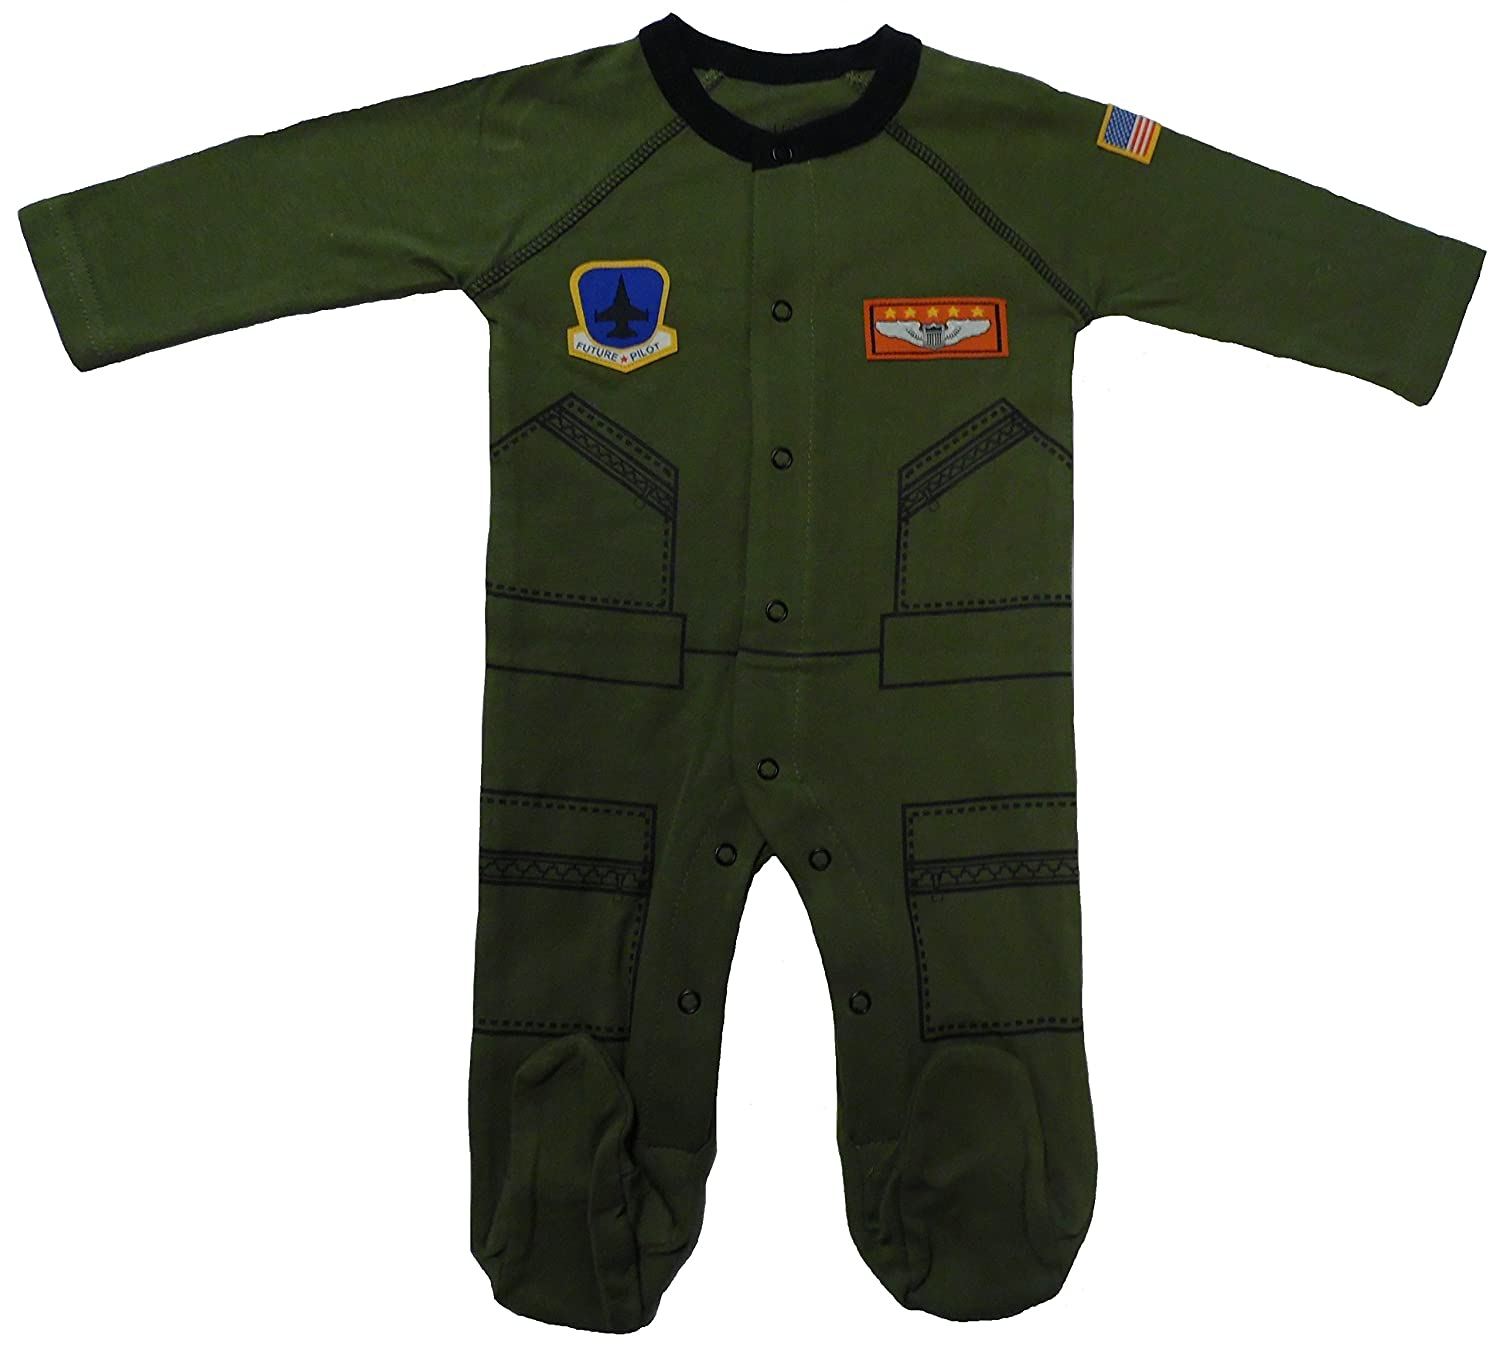 Baby Boys Aviator Flight Suit Future Pilot Long Outfit Olive Green